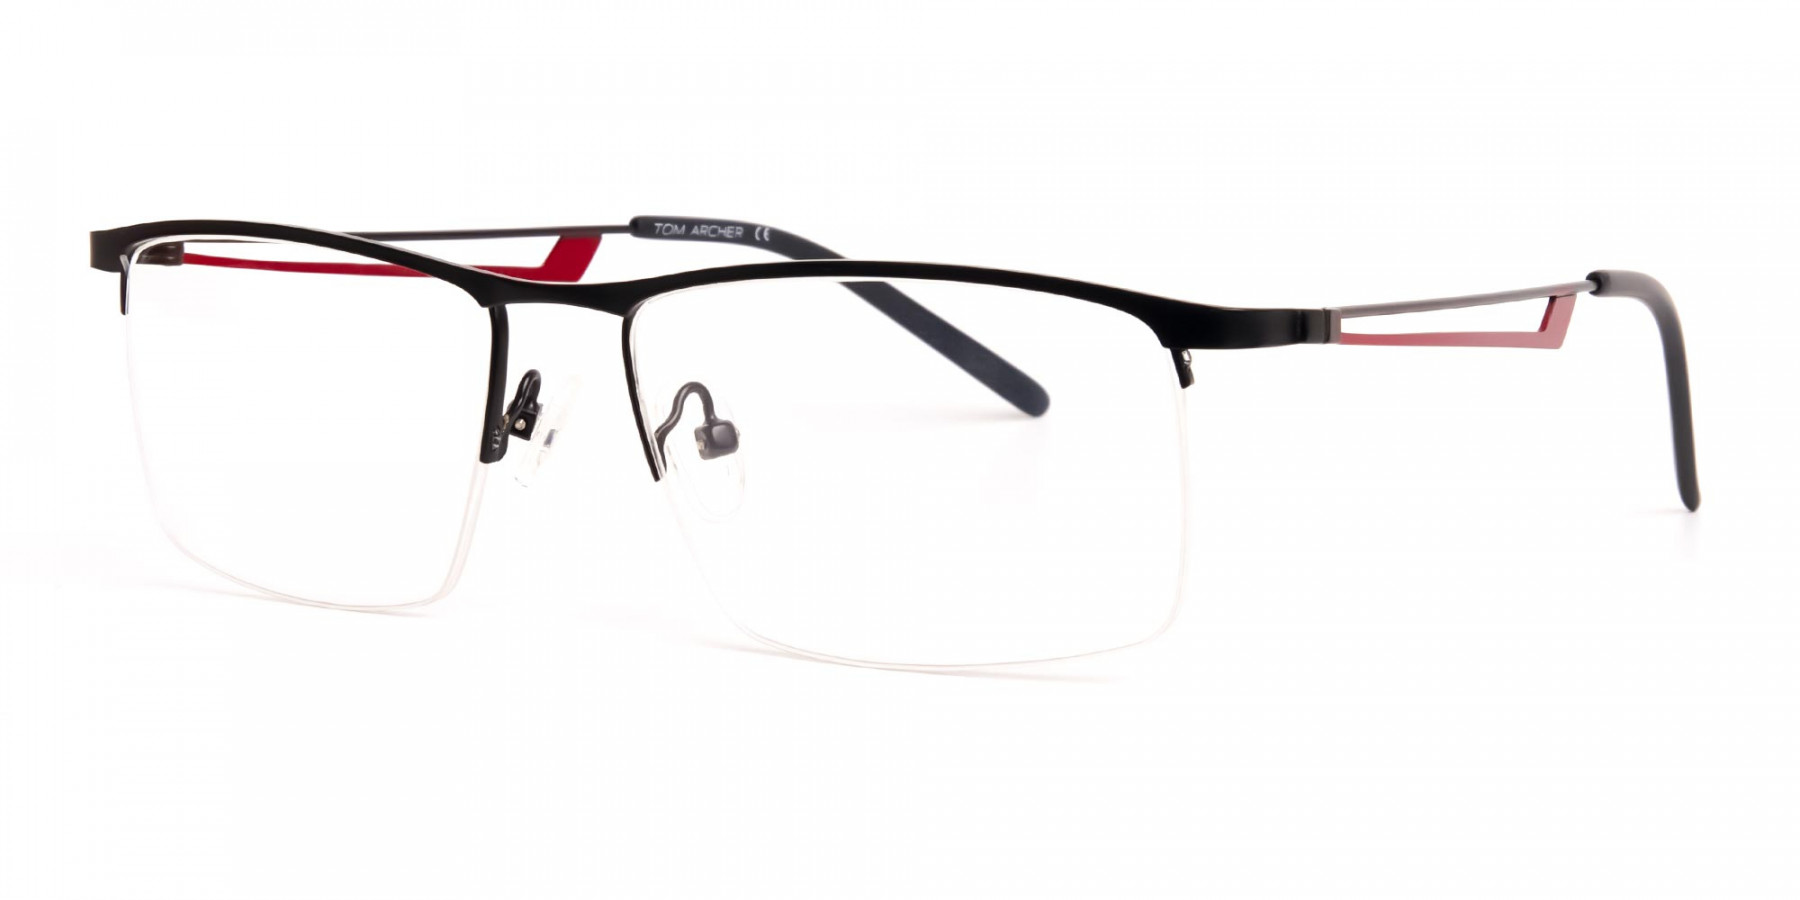 black and red half-rim rectangular glasses frames-1